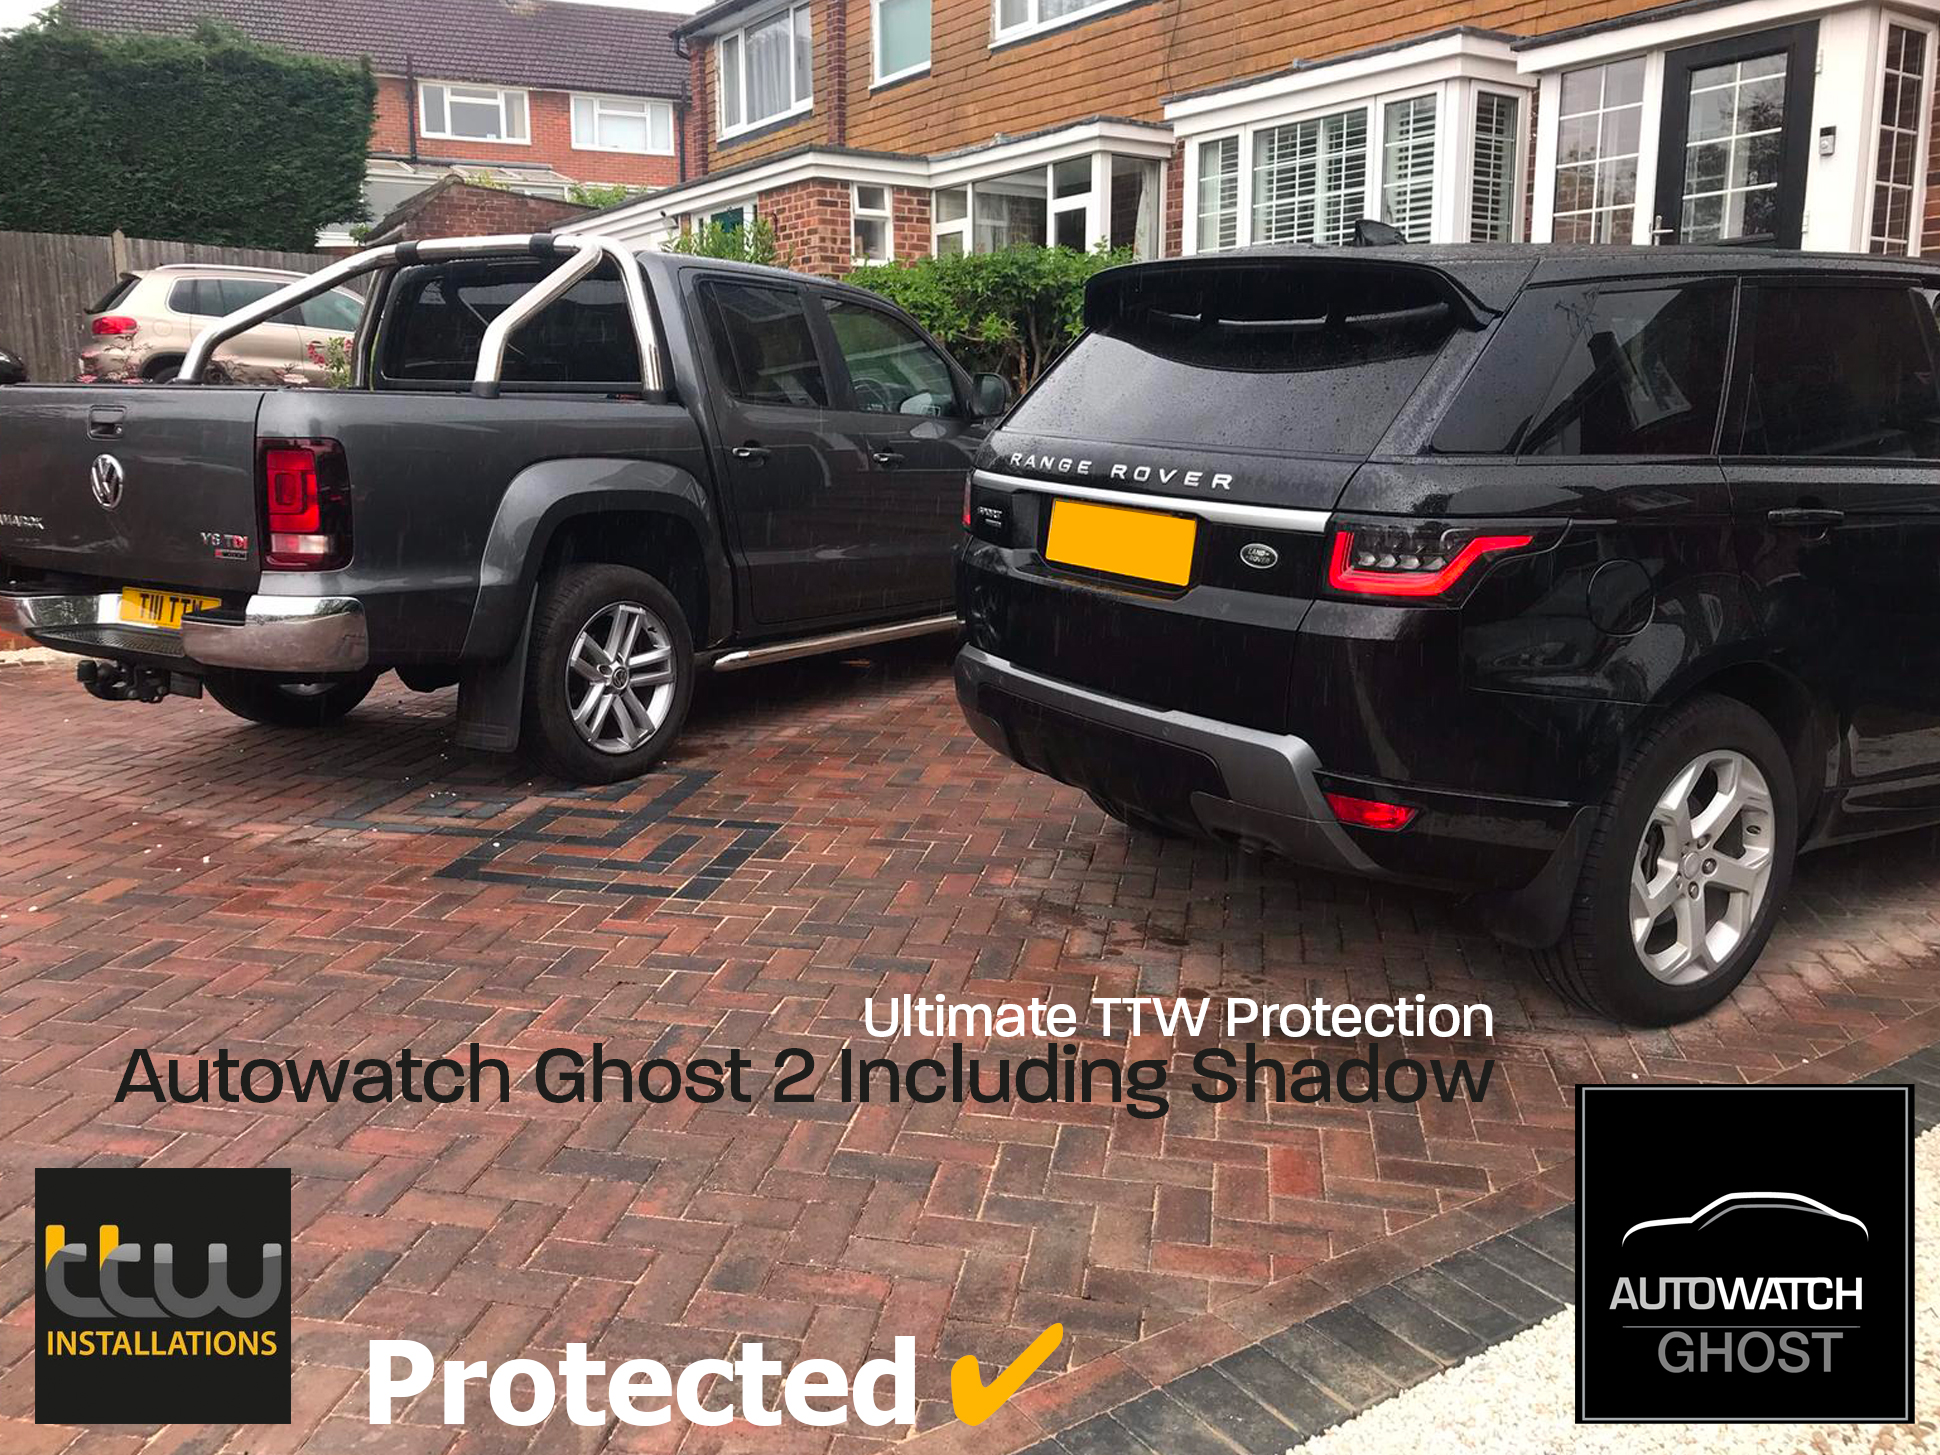 Range Rover Sport Autowatch Ghost 2 protected By TTW Installations